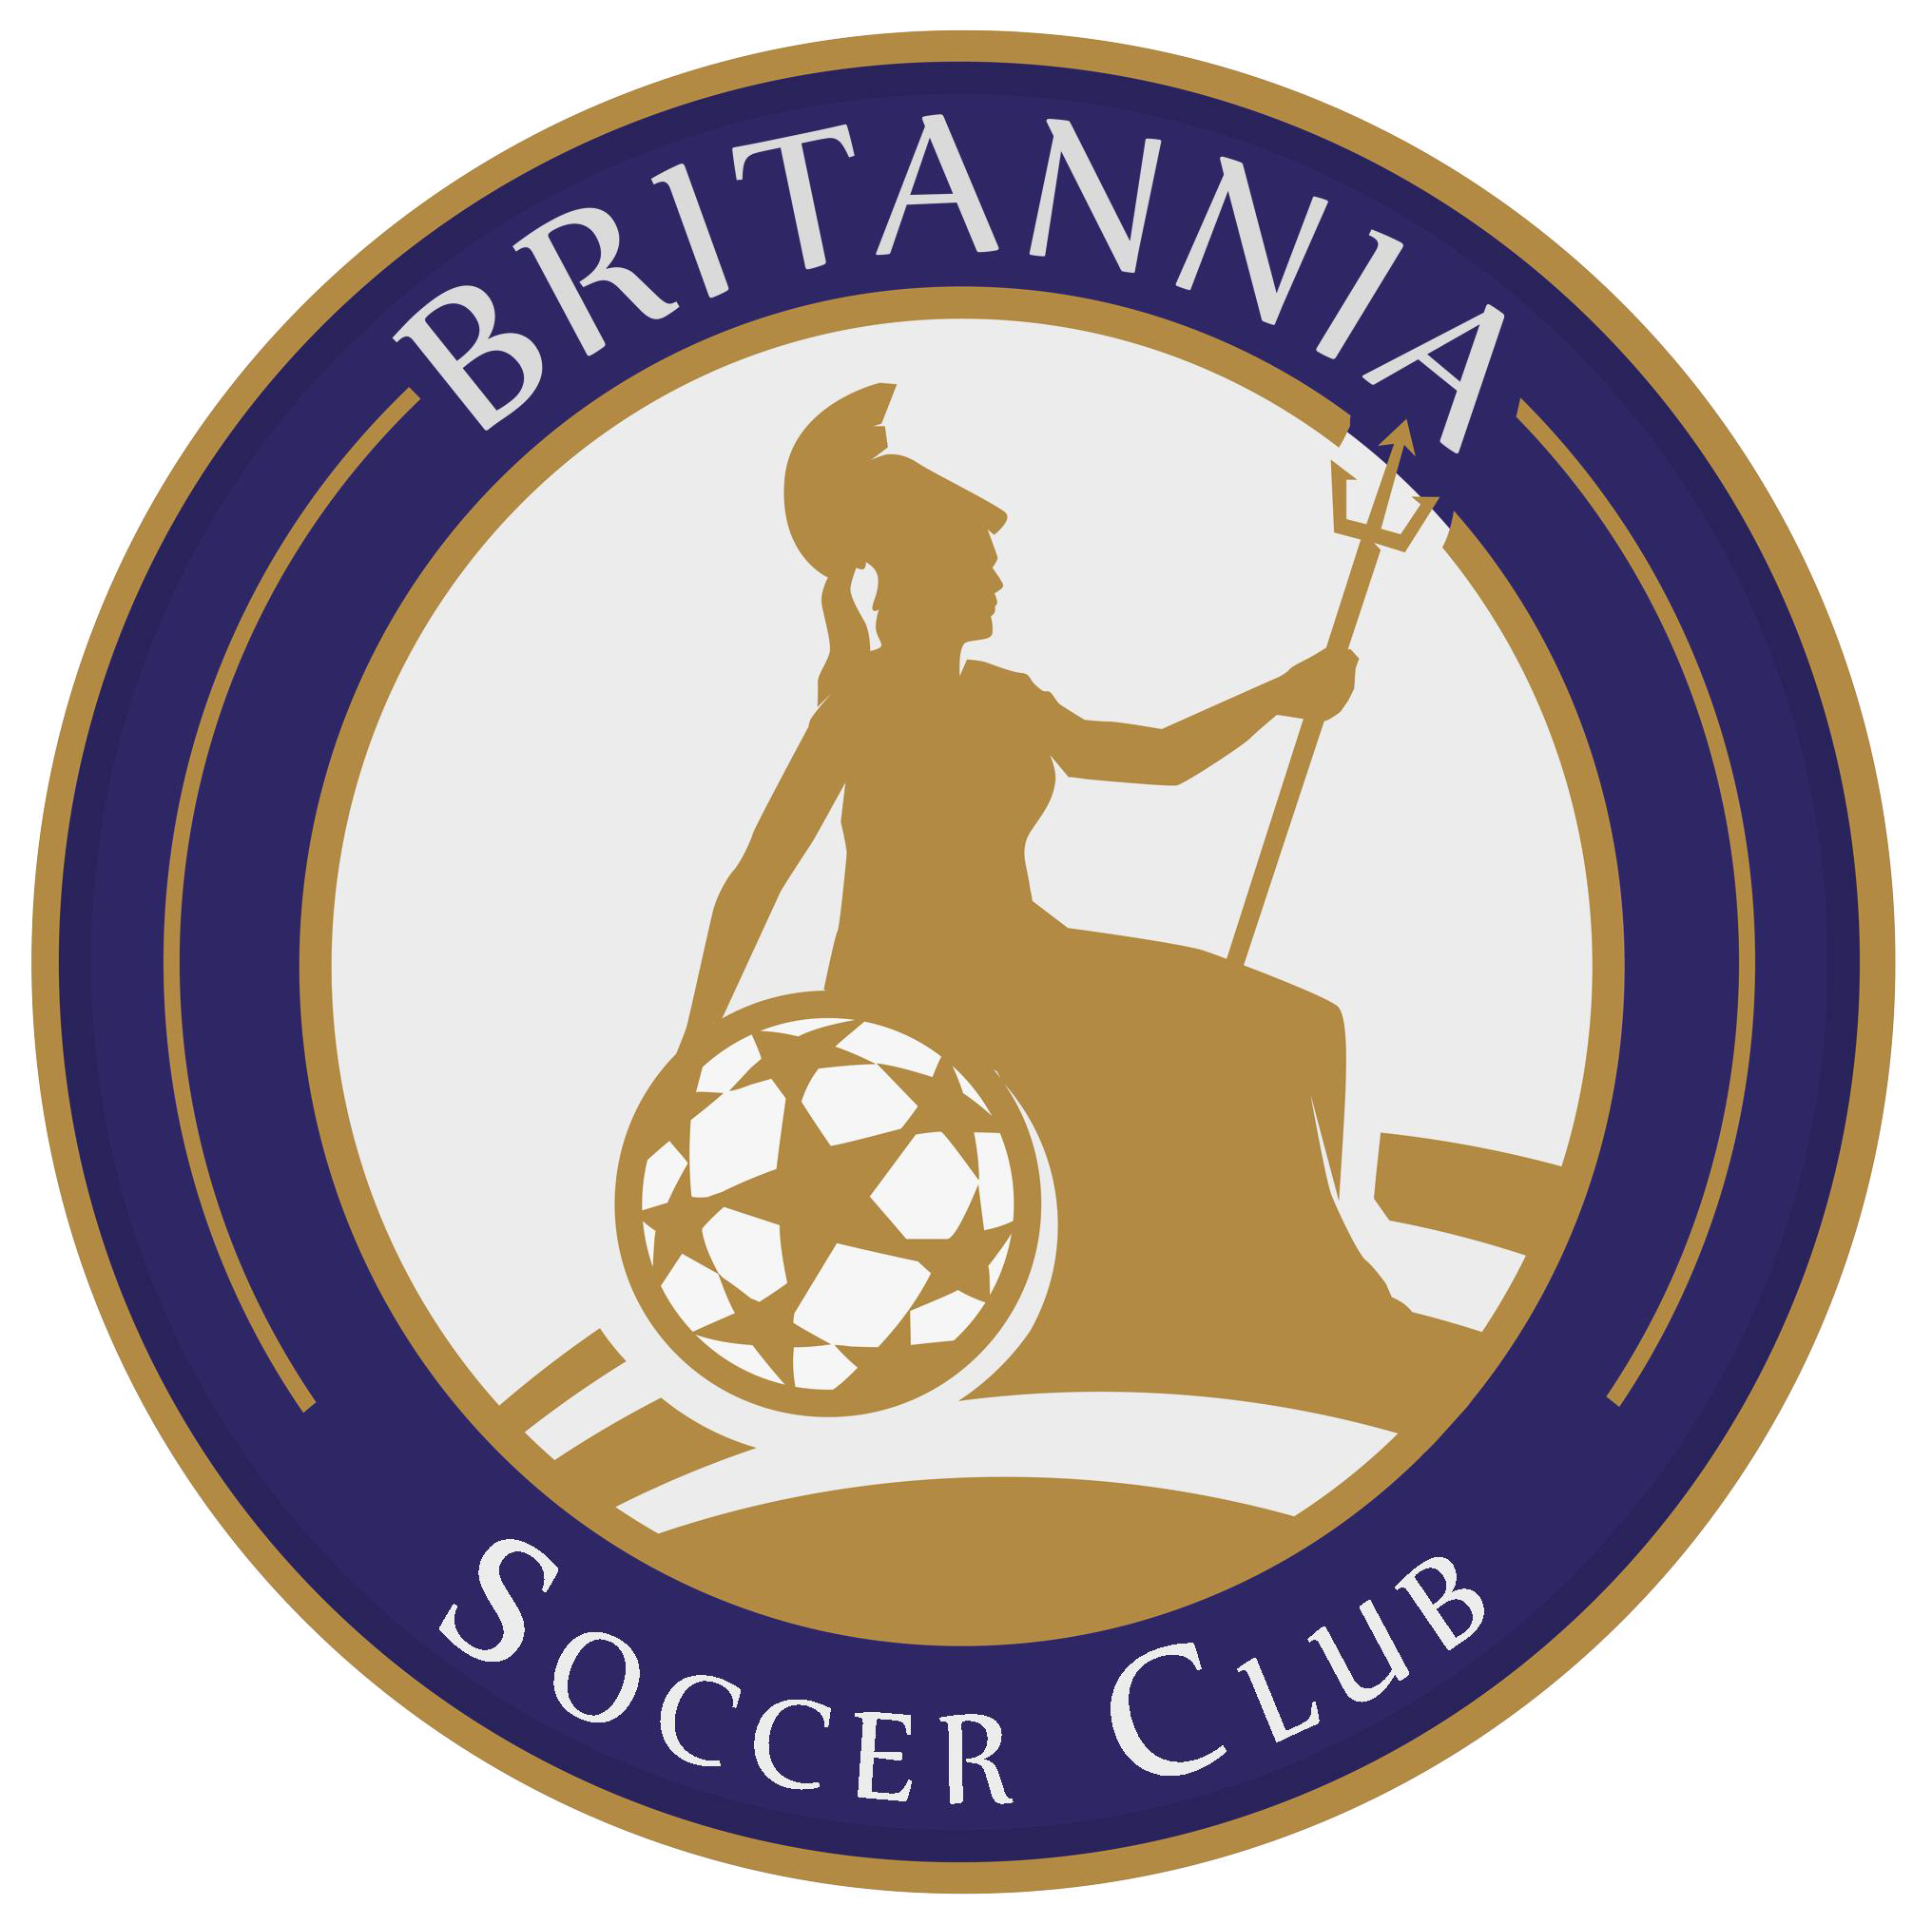 https://versatilekids-com-prod.s3-us-west-1.amazonaws.com/media/1487099869_46_Britannia%20Soccer%20Club.png